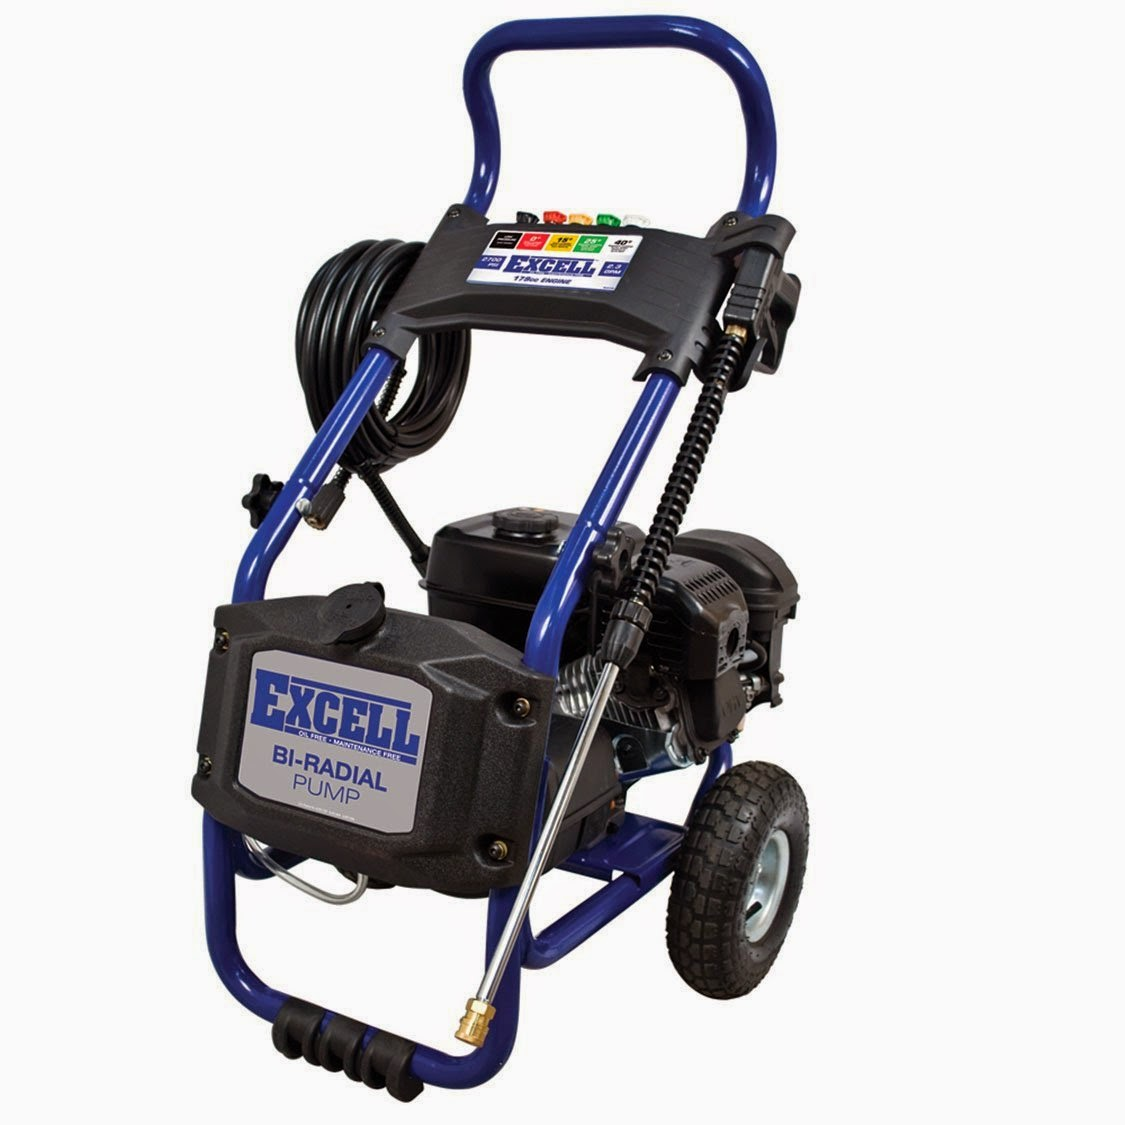 Pictures of Excell Power Washer Parts